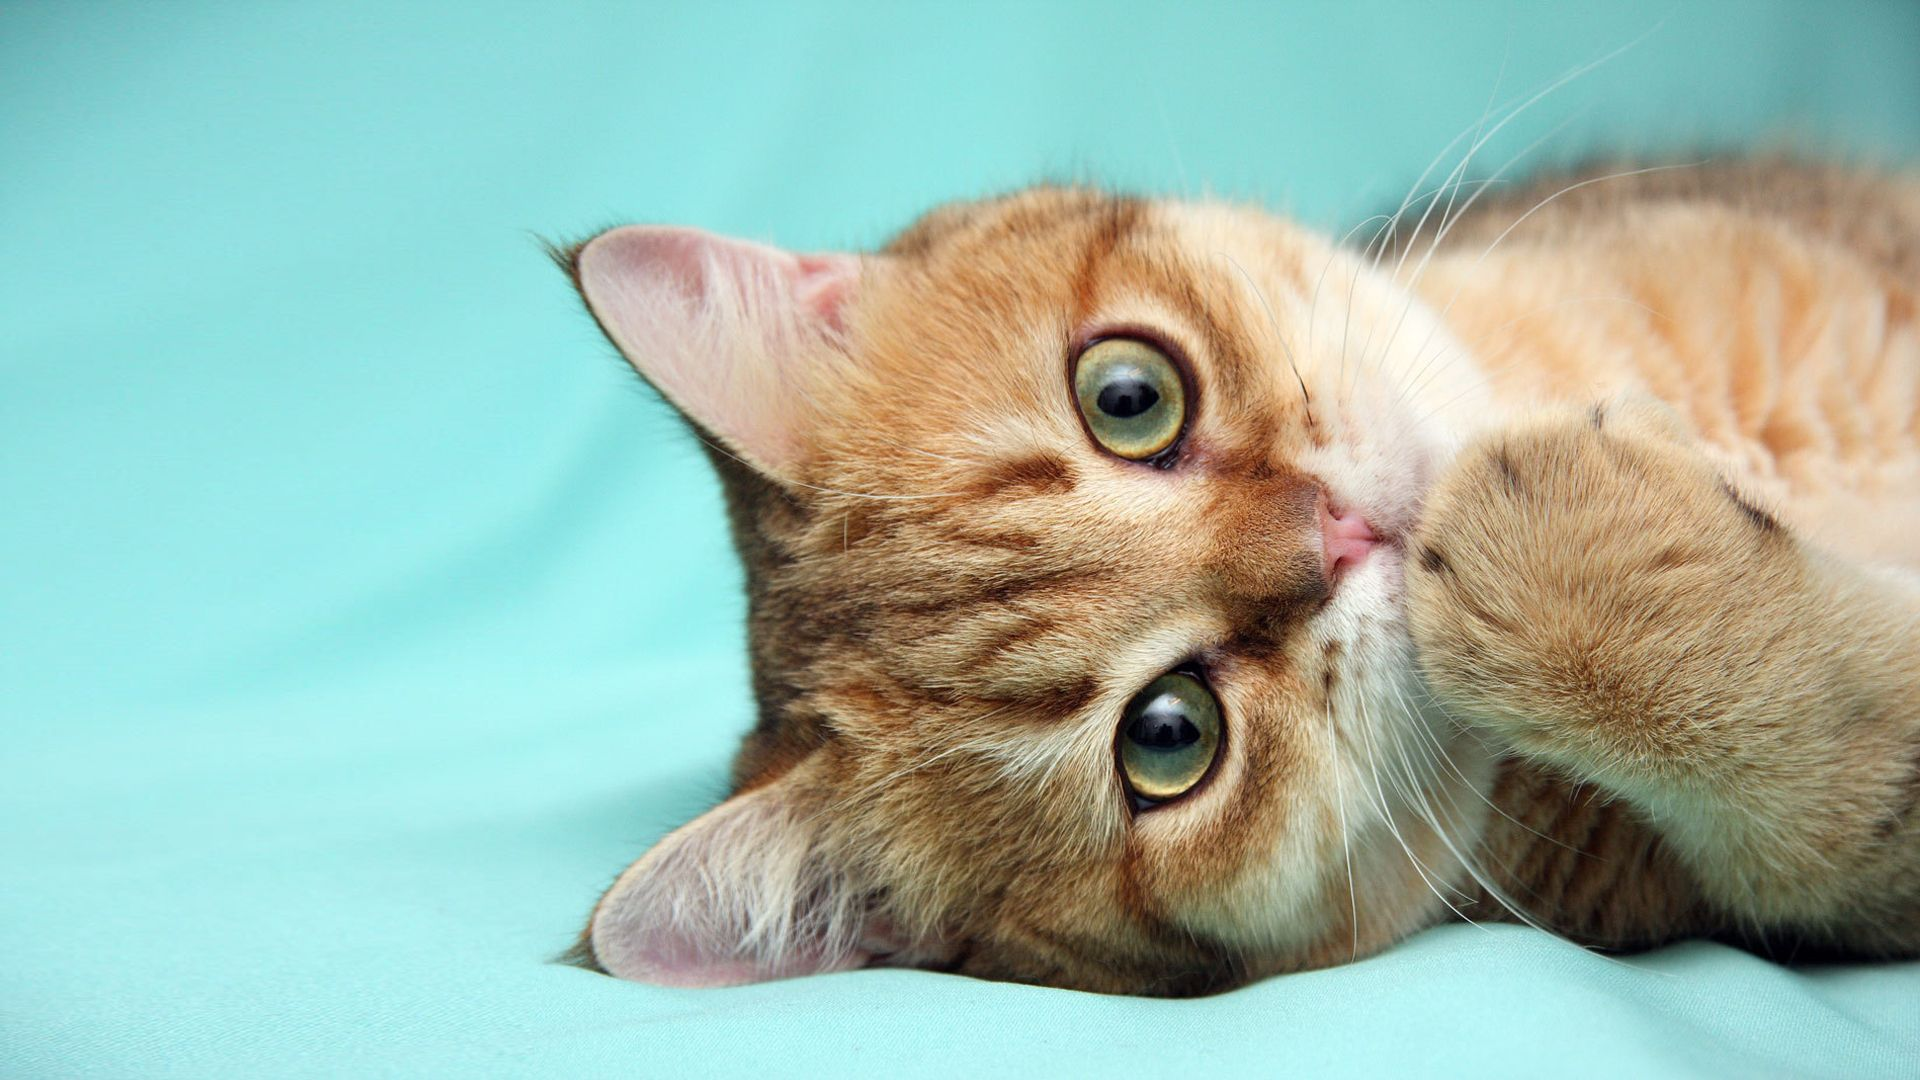 Of Wallpapers Images Cats